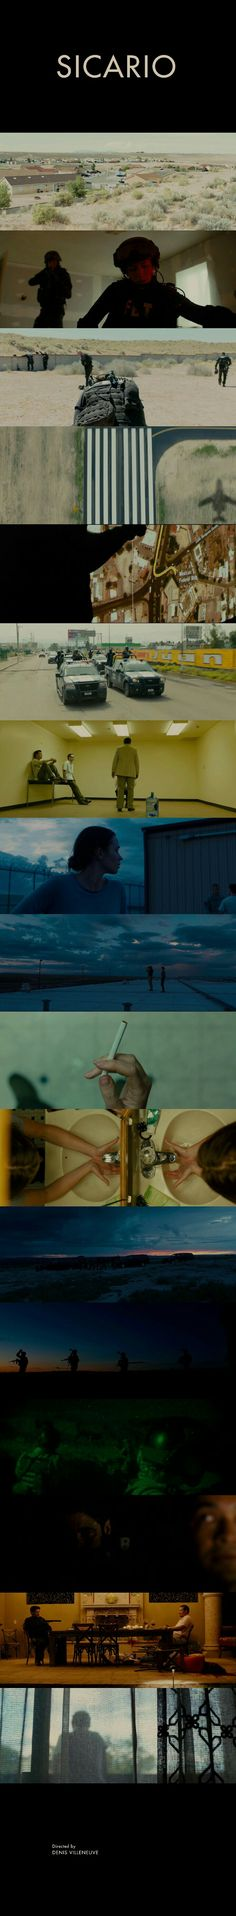 Sicario Directed by Denis Villeneuve. Cinematography by Roger Deakins. 18 Movies, Great Movies, Screen Printing Supplies, Puerto Rico, Roger Deakins, Denis Villeneuve, Privacy Screen Outdoor, Still Frame, Light Film